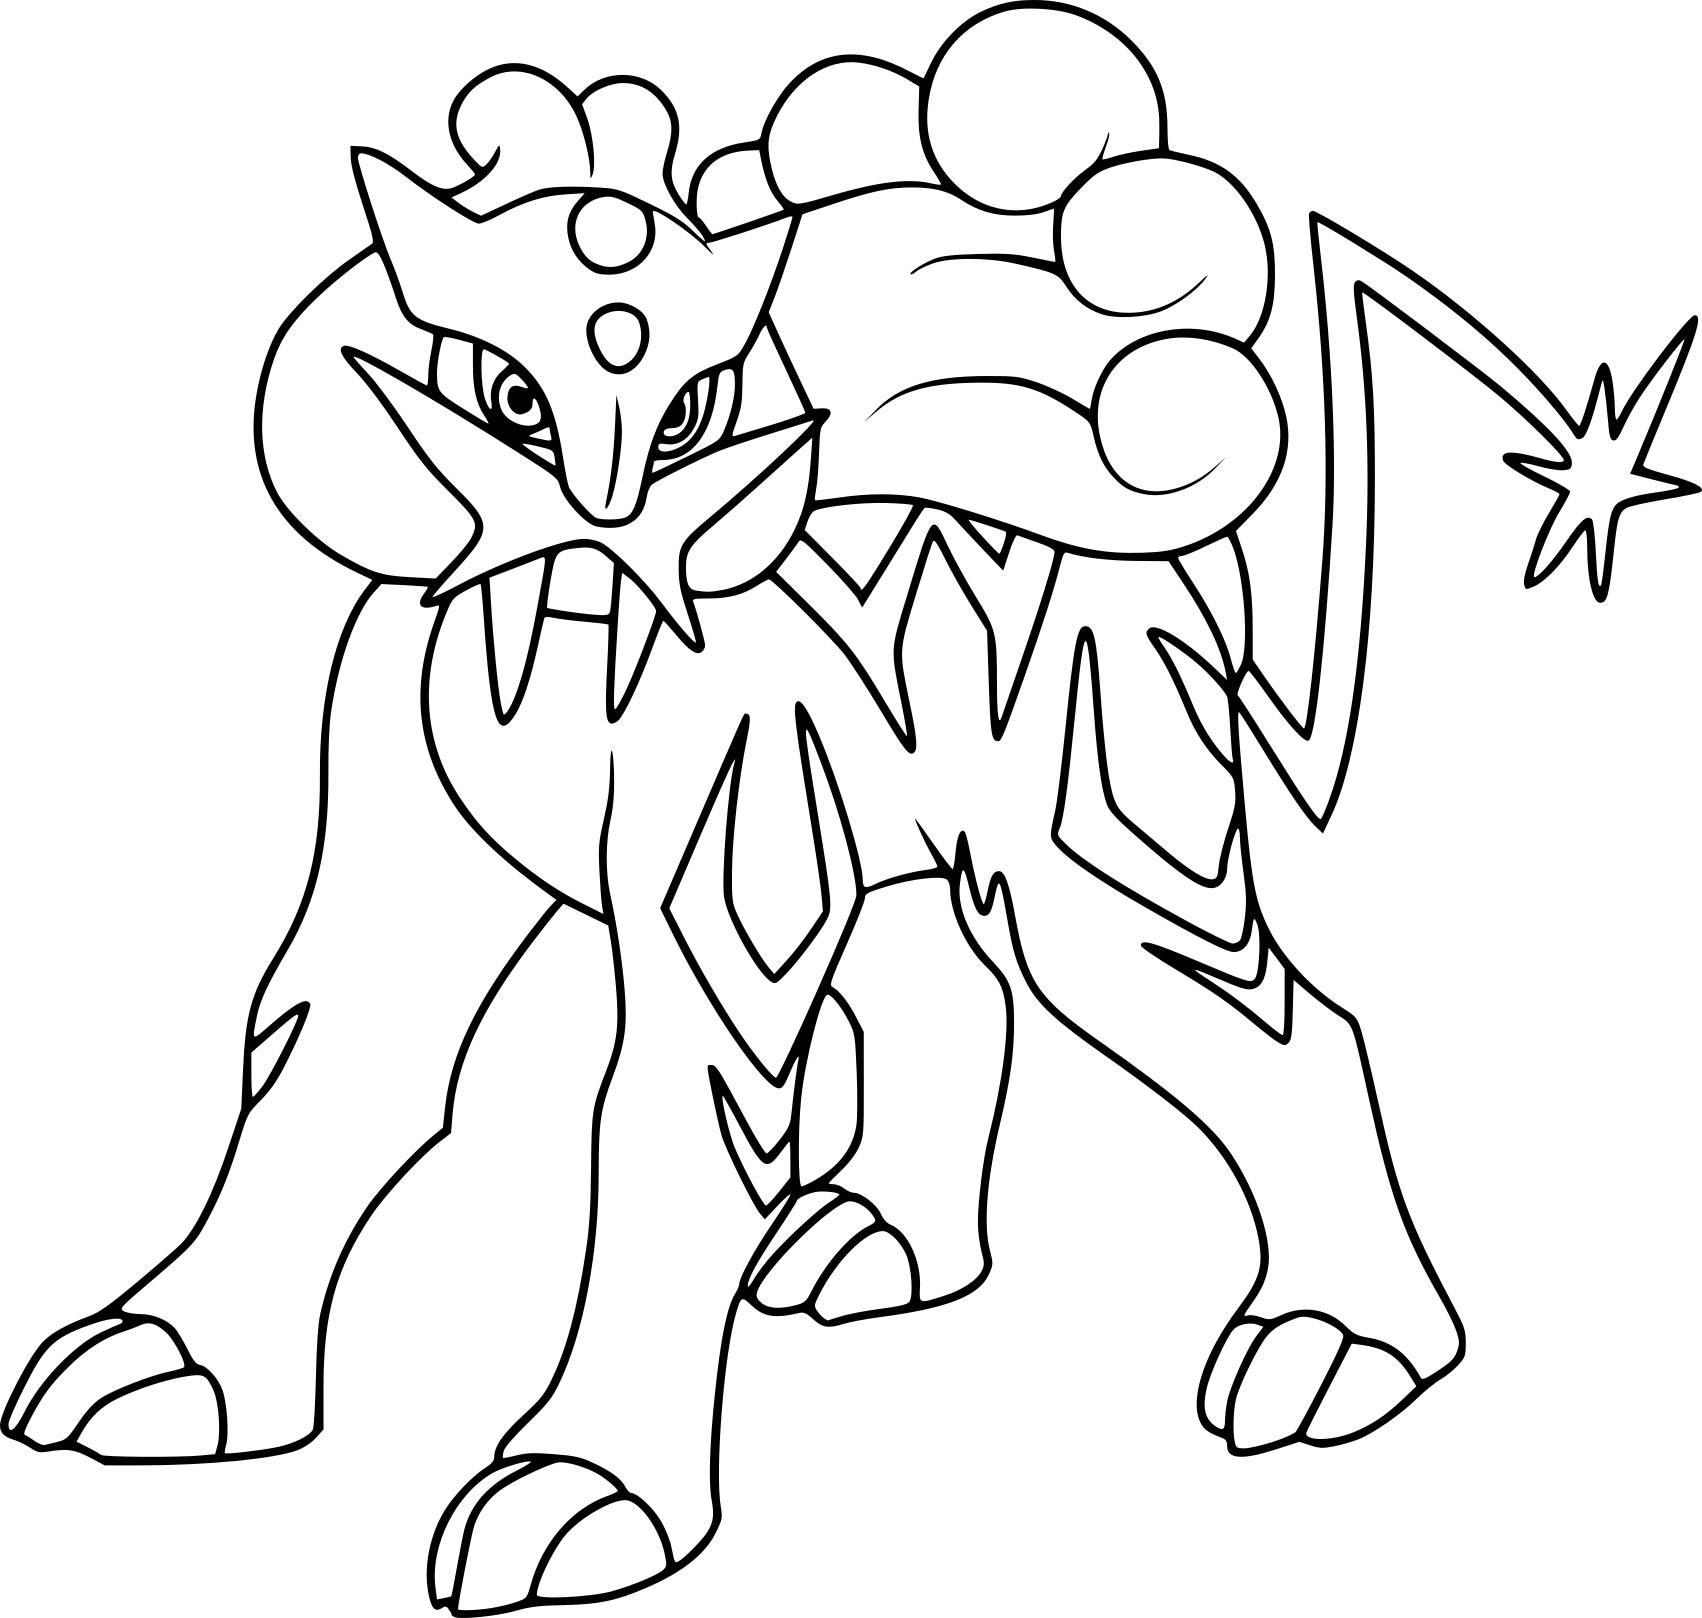 raikou coloring pages - photo#9